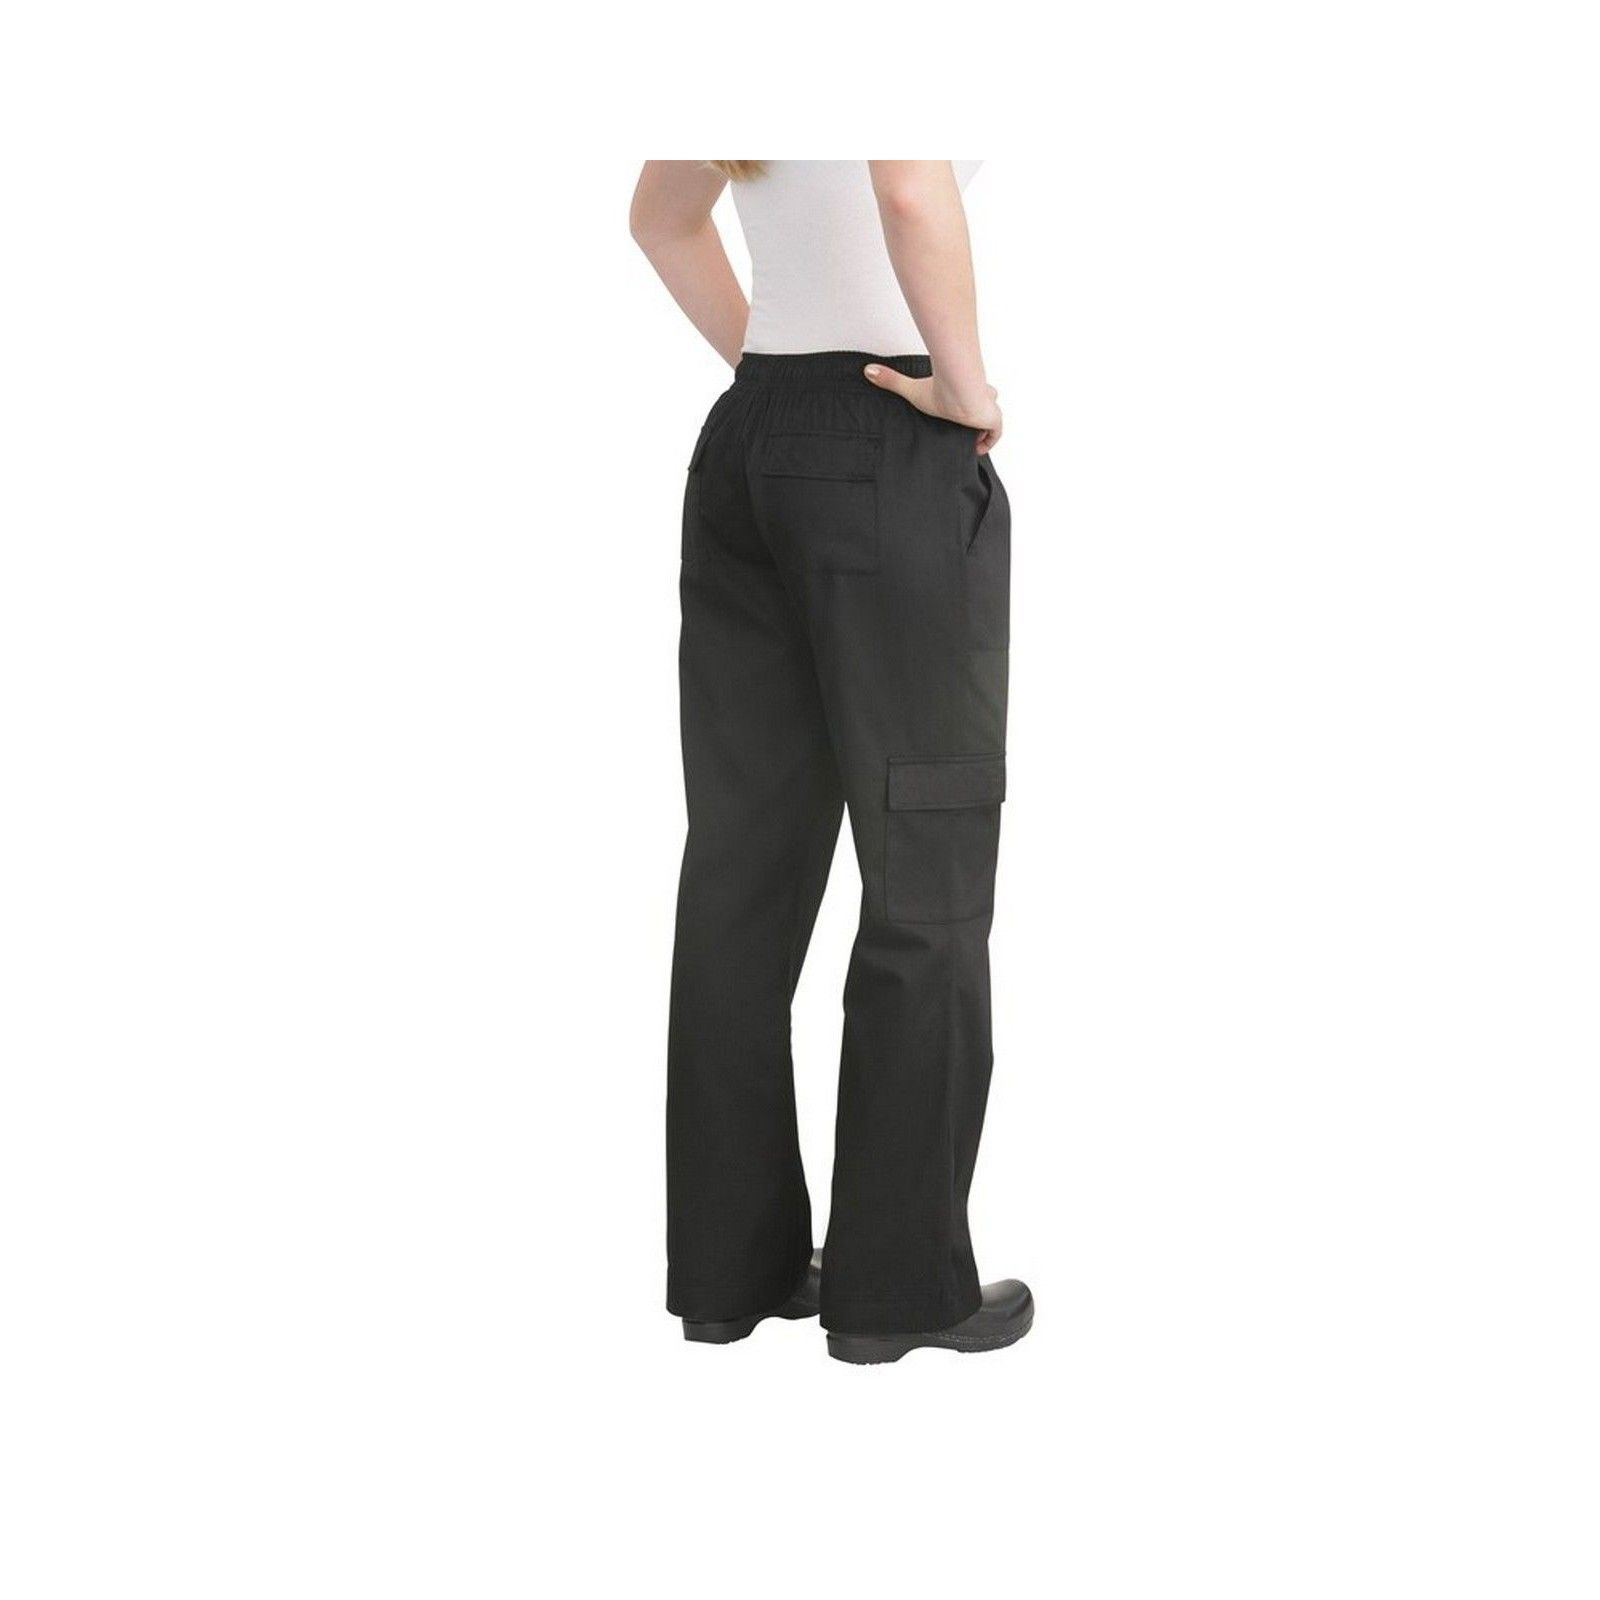 3197d079057 ... Chef Works Women s Black Cargo Chef Pants XS-3XL - CPWO-BLKChef ...